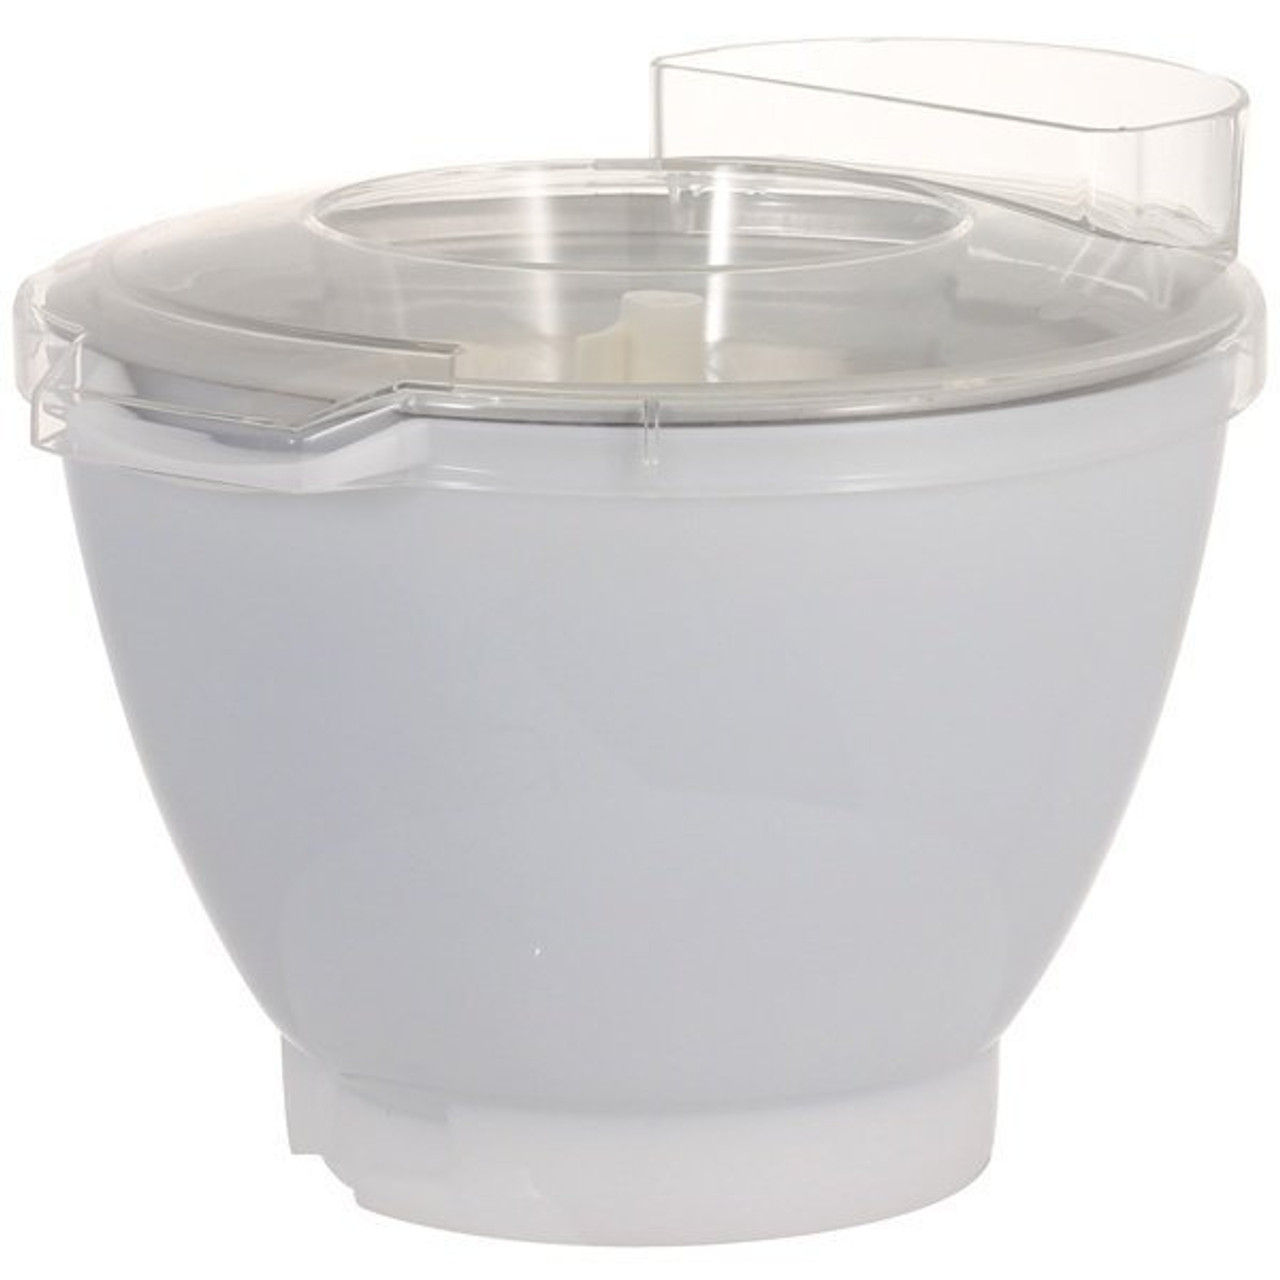 Kenwood AT957A Major Size Ice Cream Maker Attachment